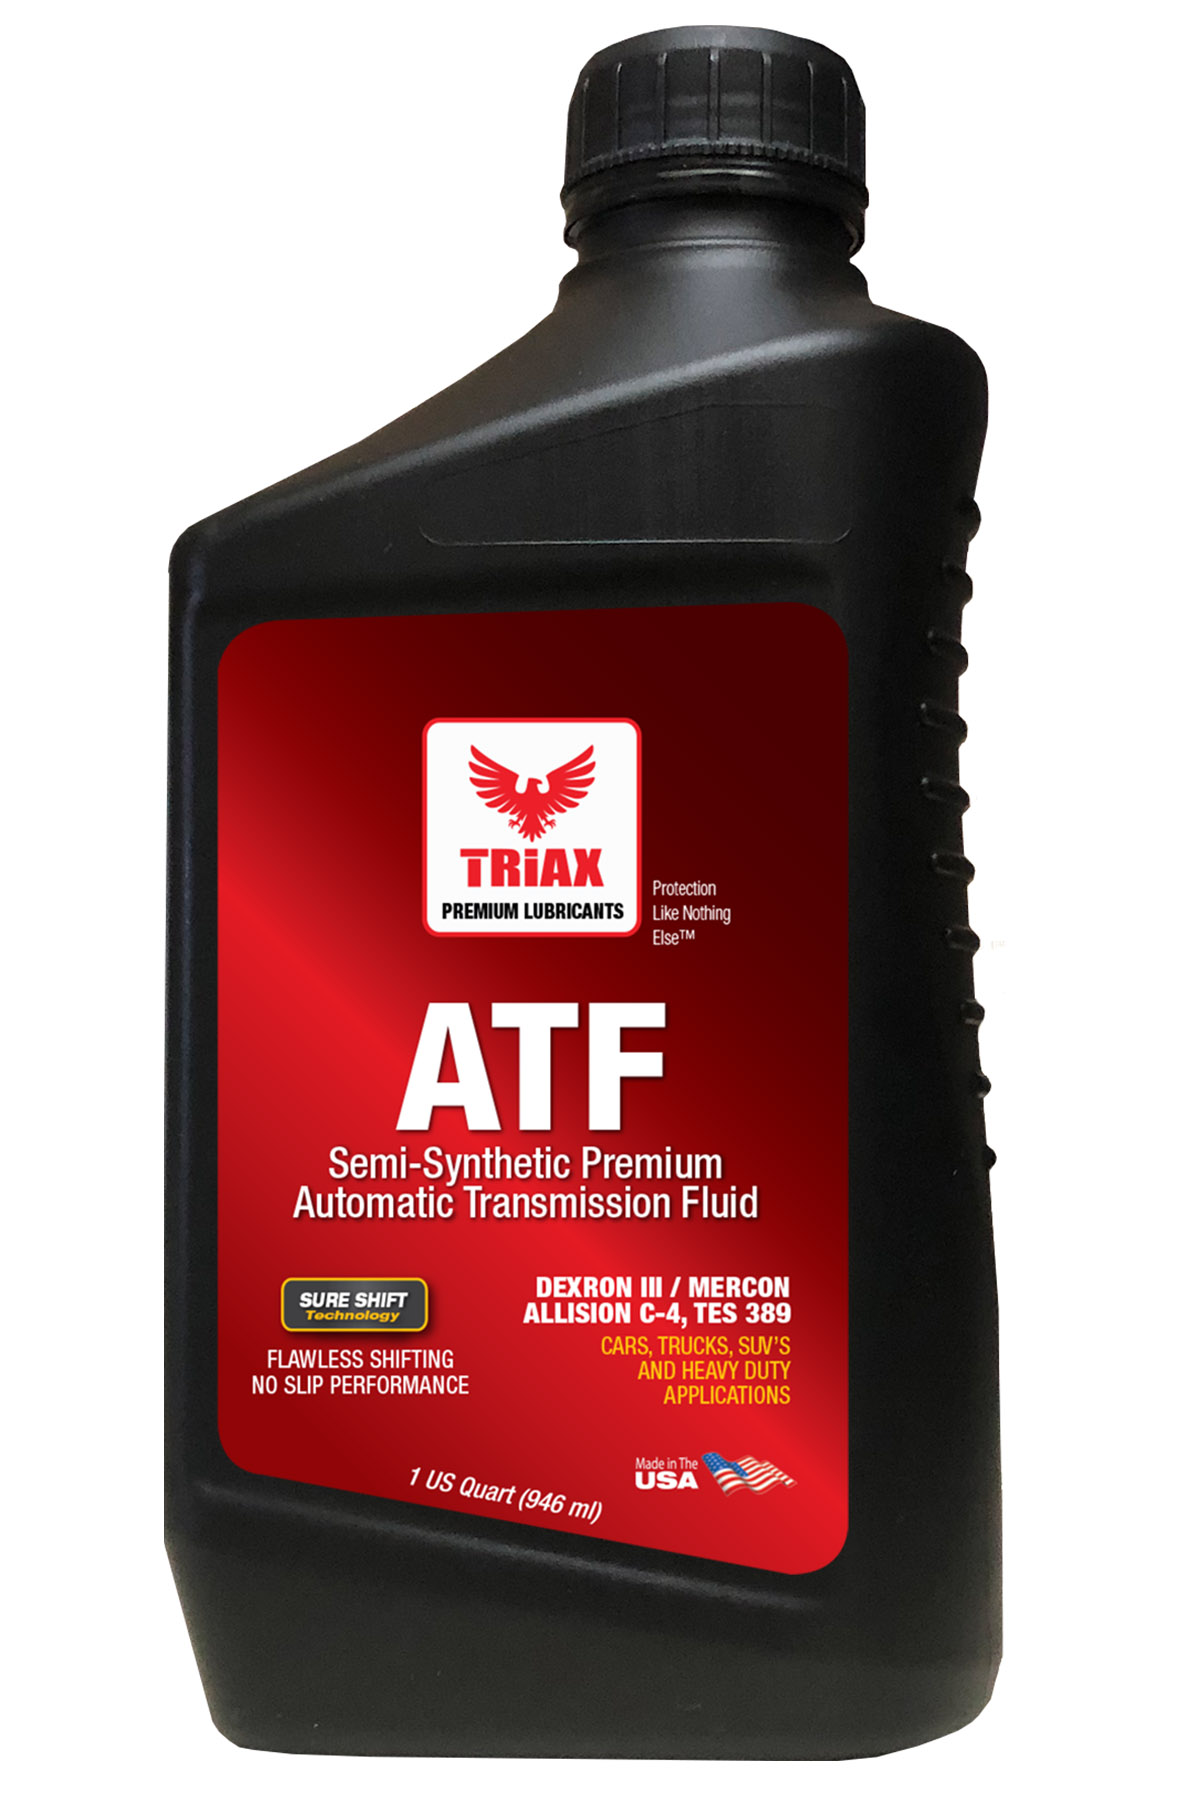 TRIAX ATF Multi-Functional Dexron III / Mercon